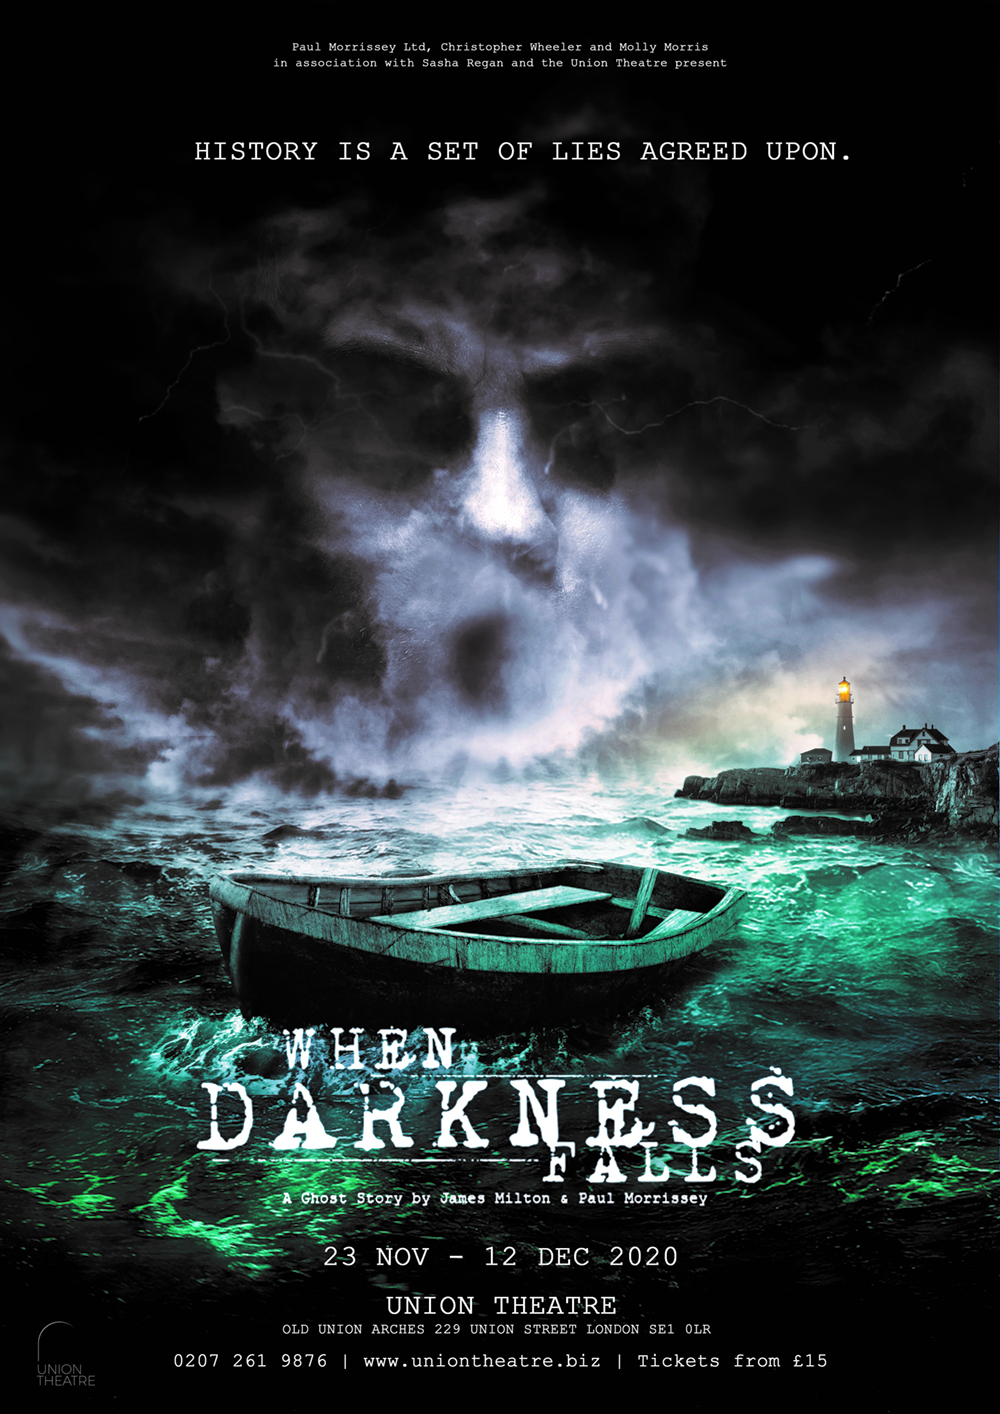 When Darkness Falls Poster Show Image